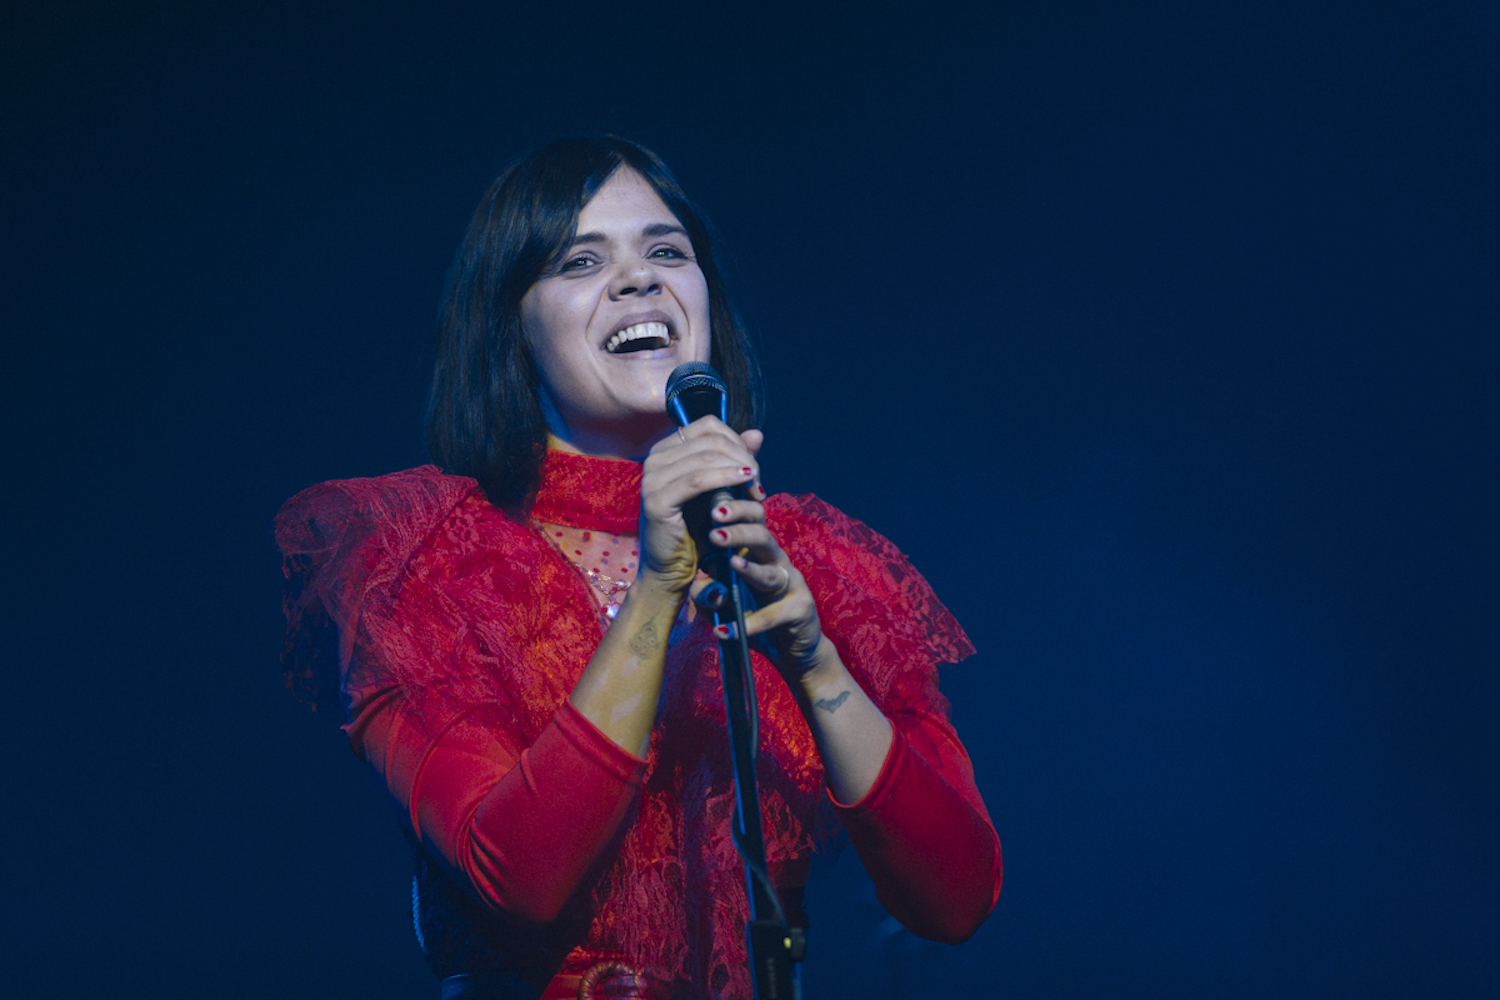 Live Review: Bat For Lashes at EartH (Evolutionary Arts Hackney), London, 26/11/19 | Gigwise